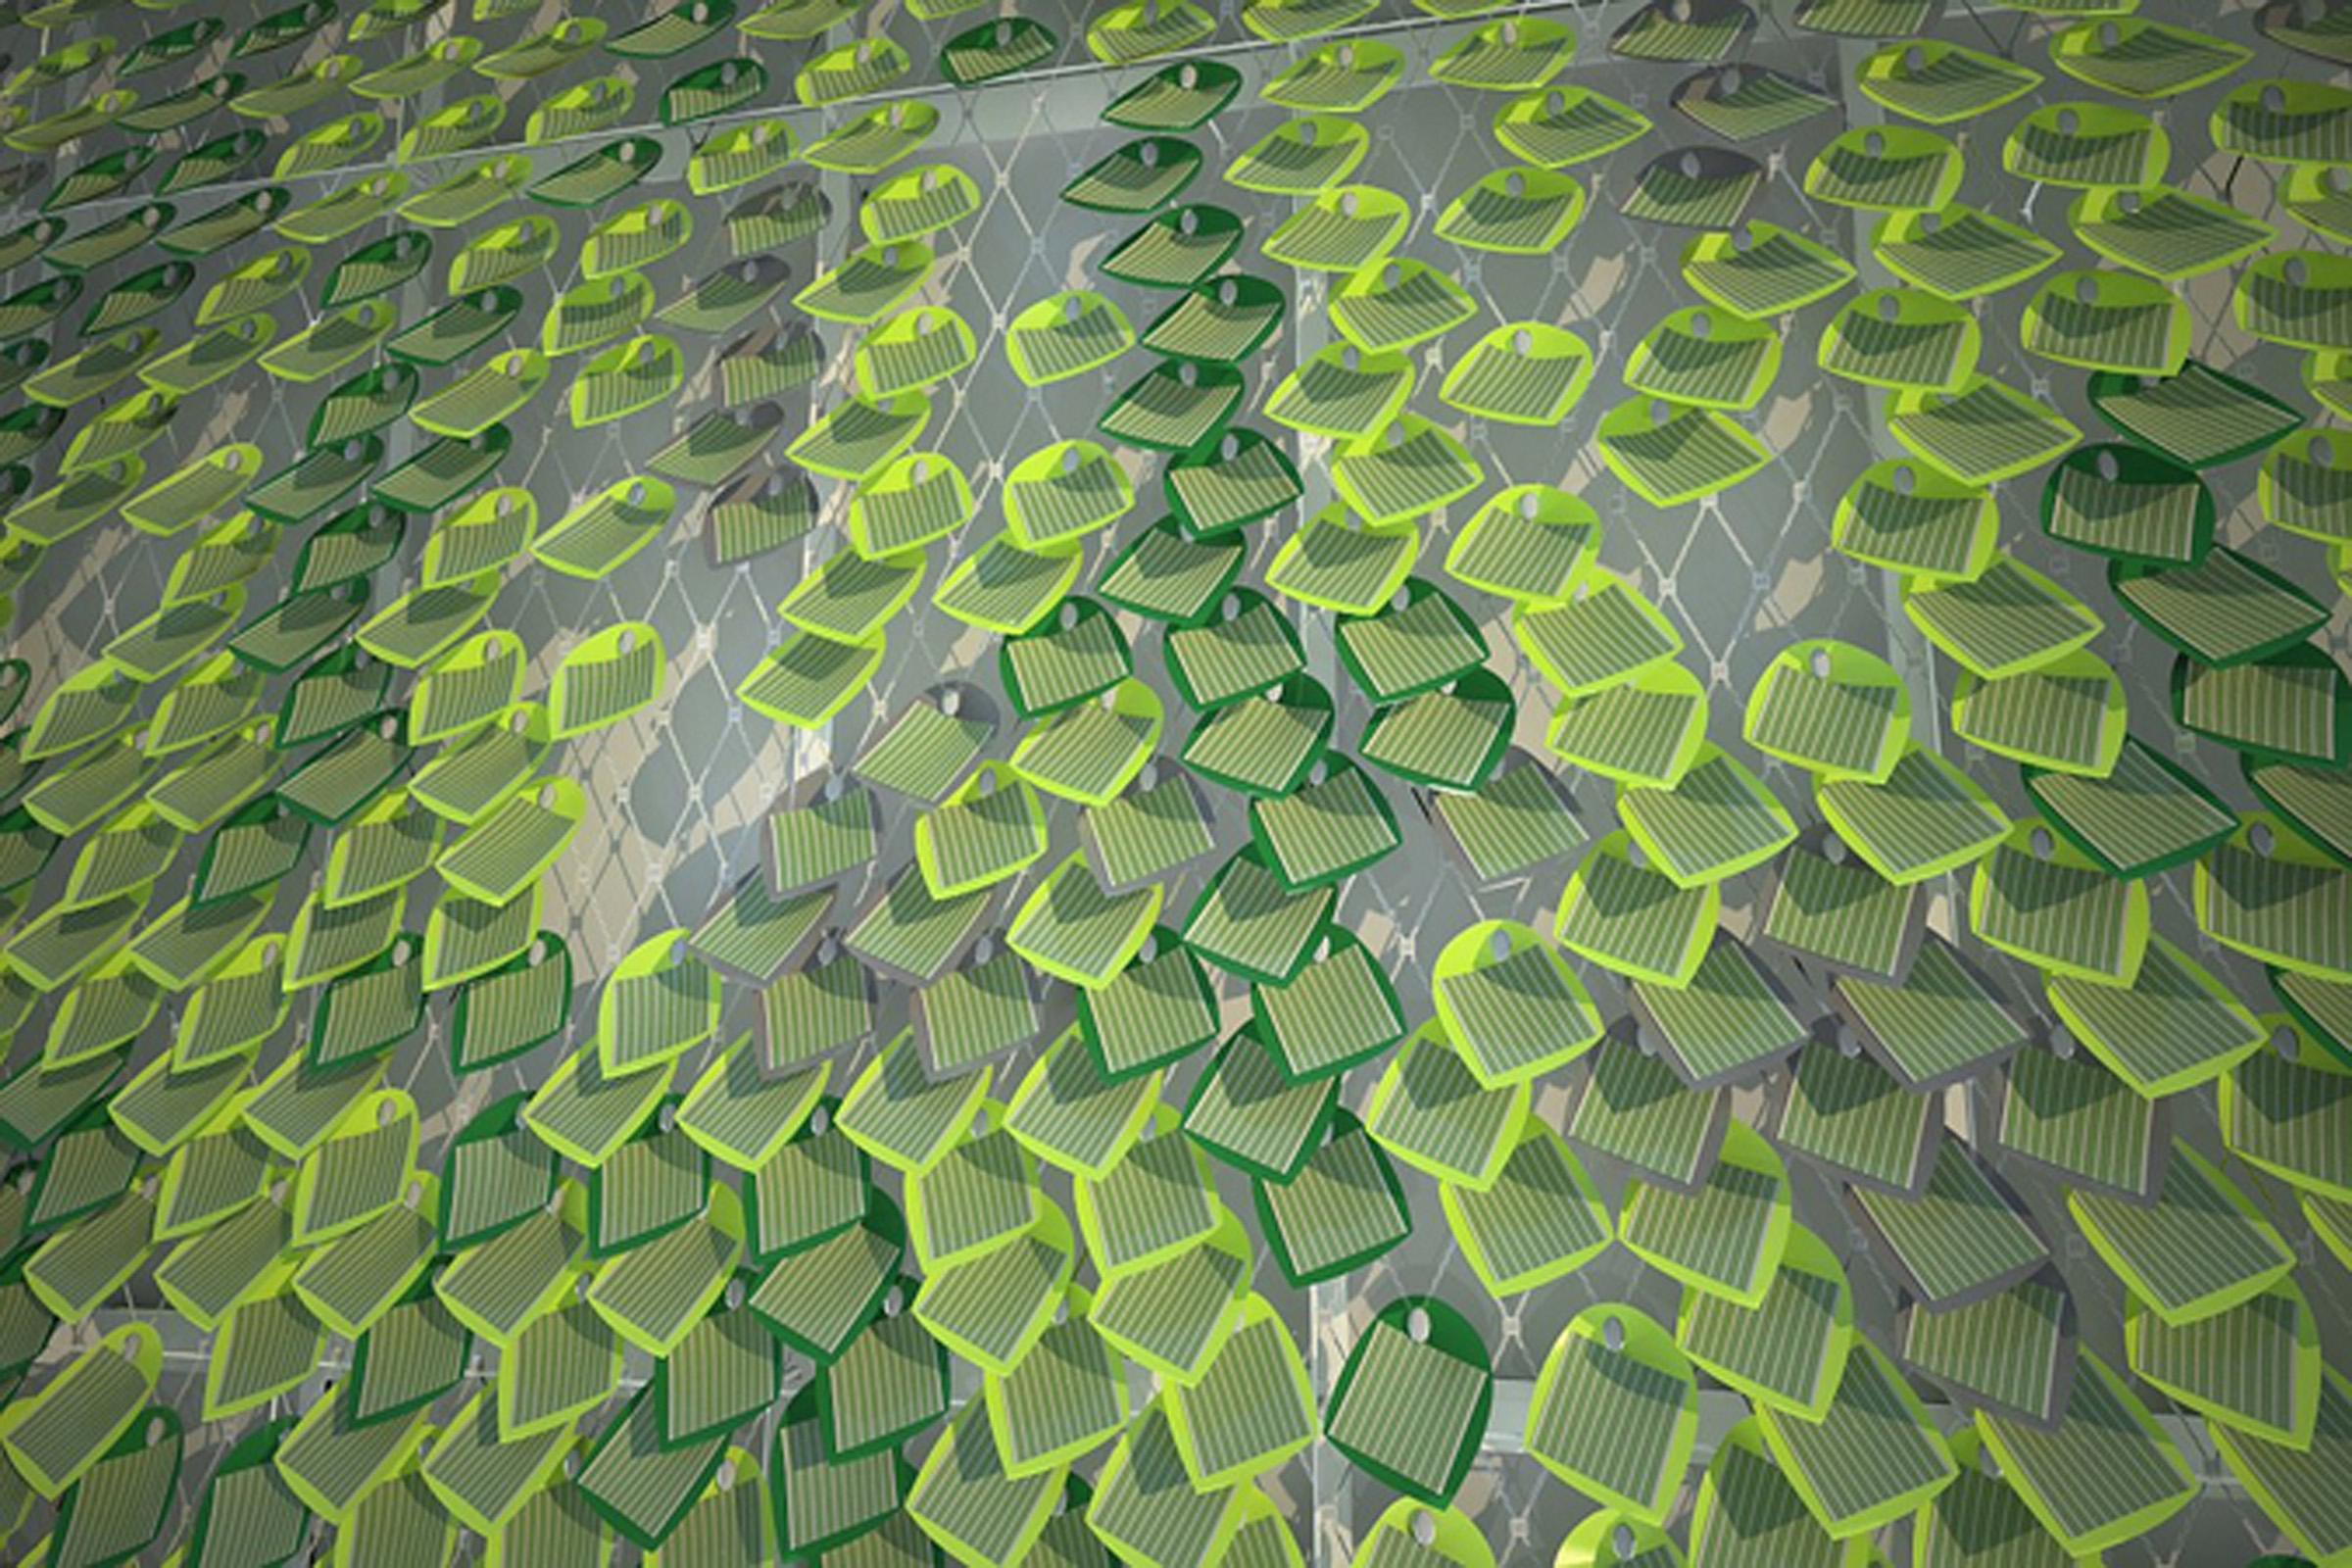 """Drawings of the solar panels in a natural-looking """"ivy-covered wall"""" arrangement."""